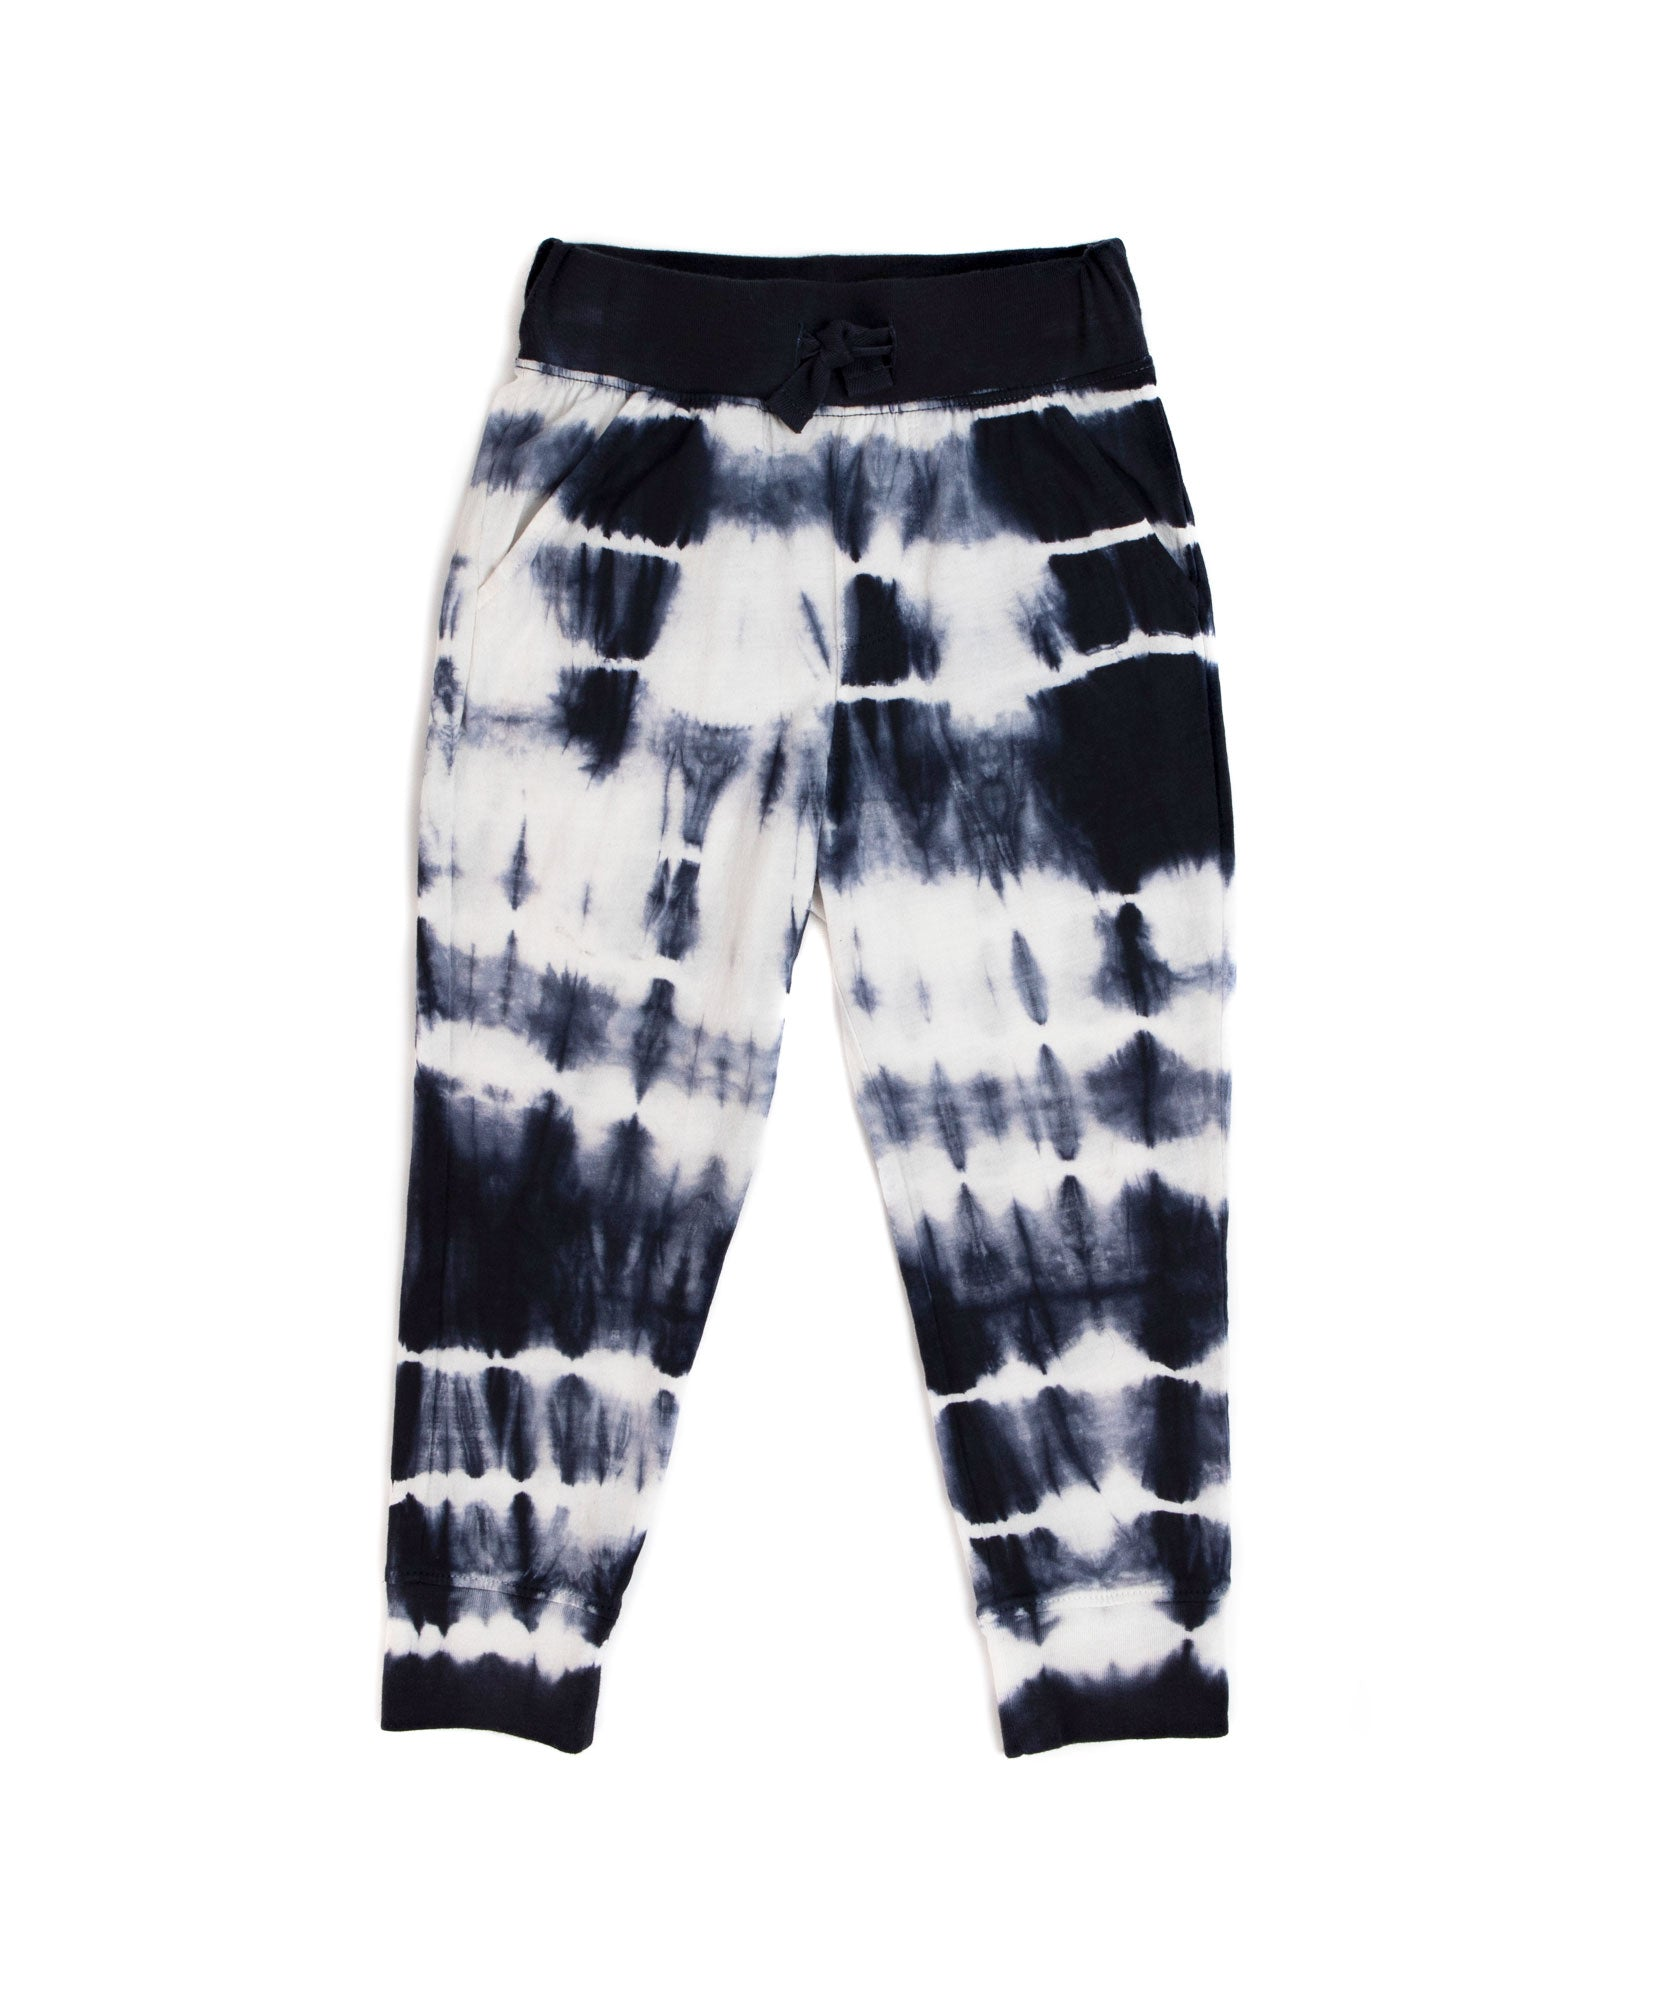 Deep Navy Tie Dye Jersey Pull-On Sweatpants - Kid's Cotton Sweatpants by ATM Anthony Thomas Melillo